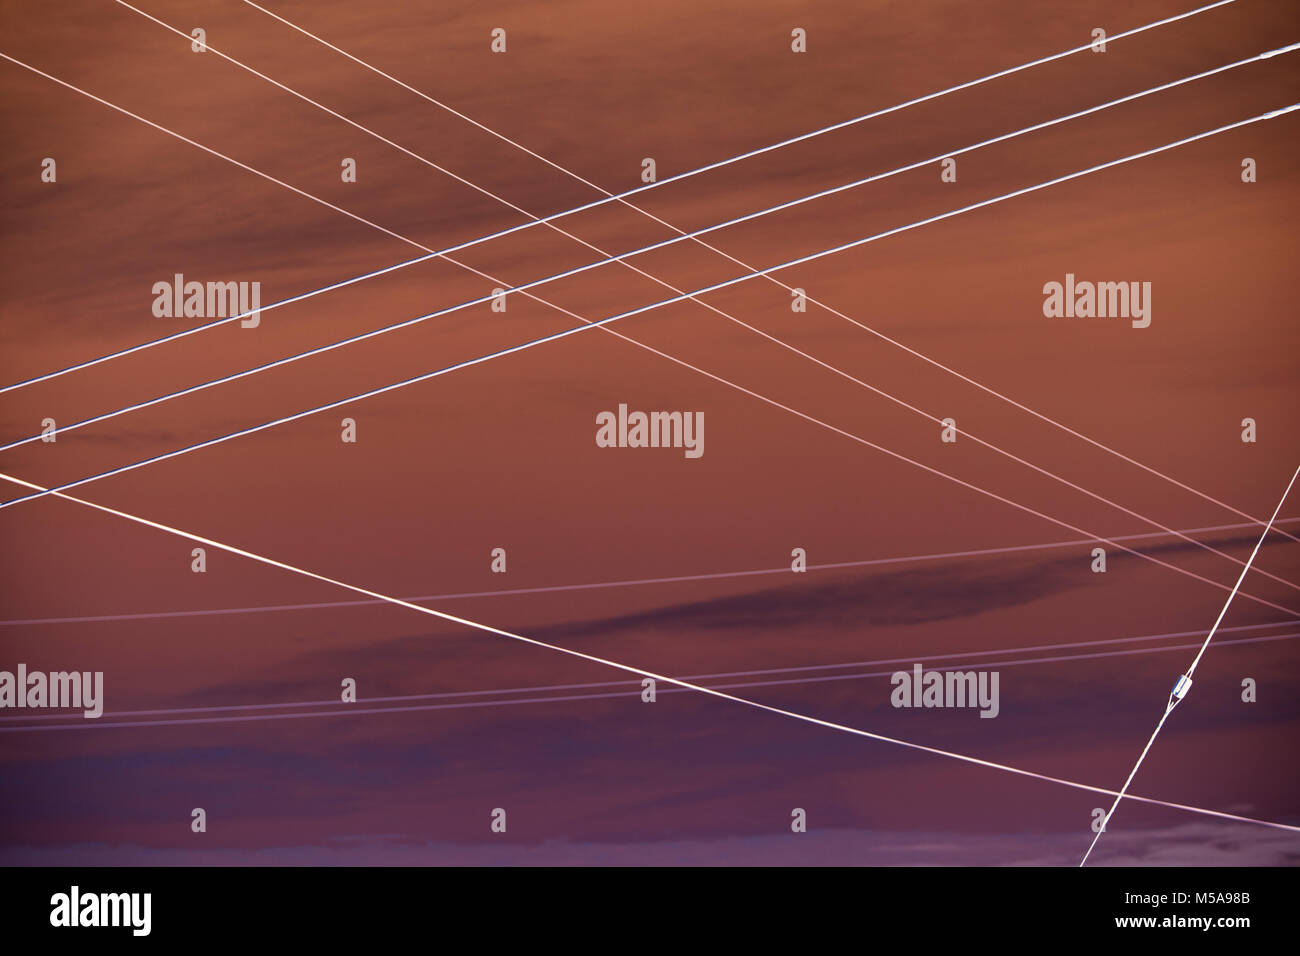 Abstract of electrical utility wires extending across sky. - Stock Image